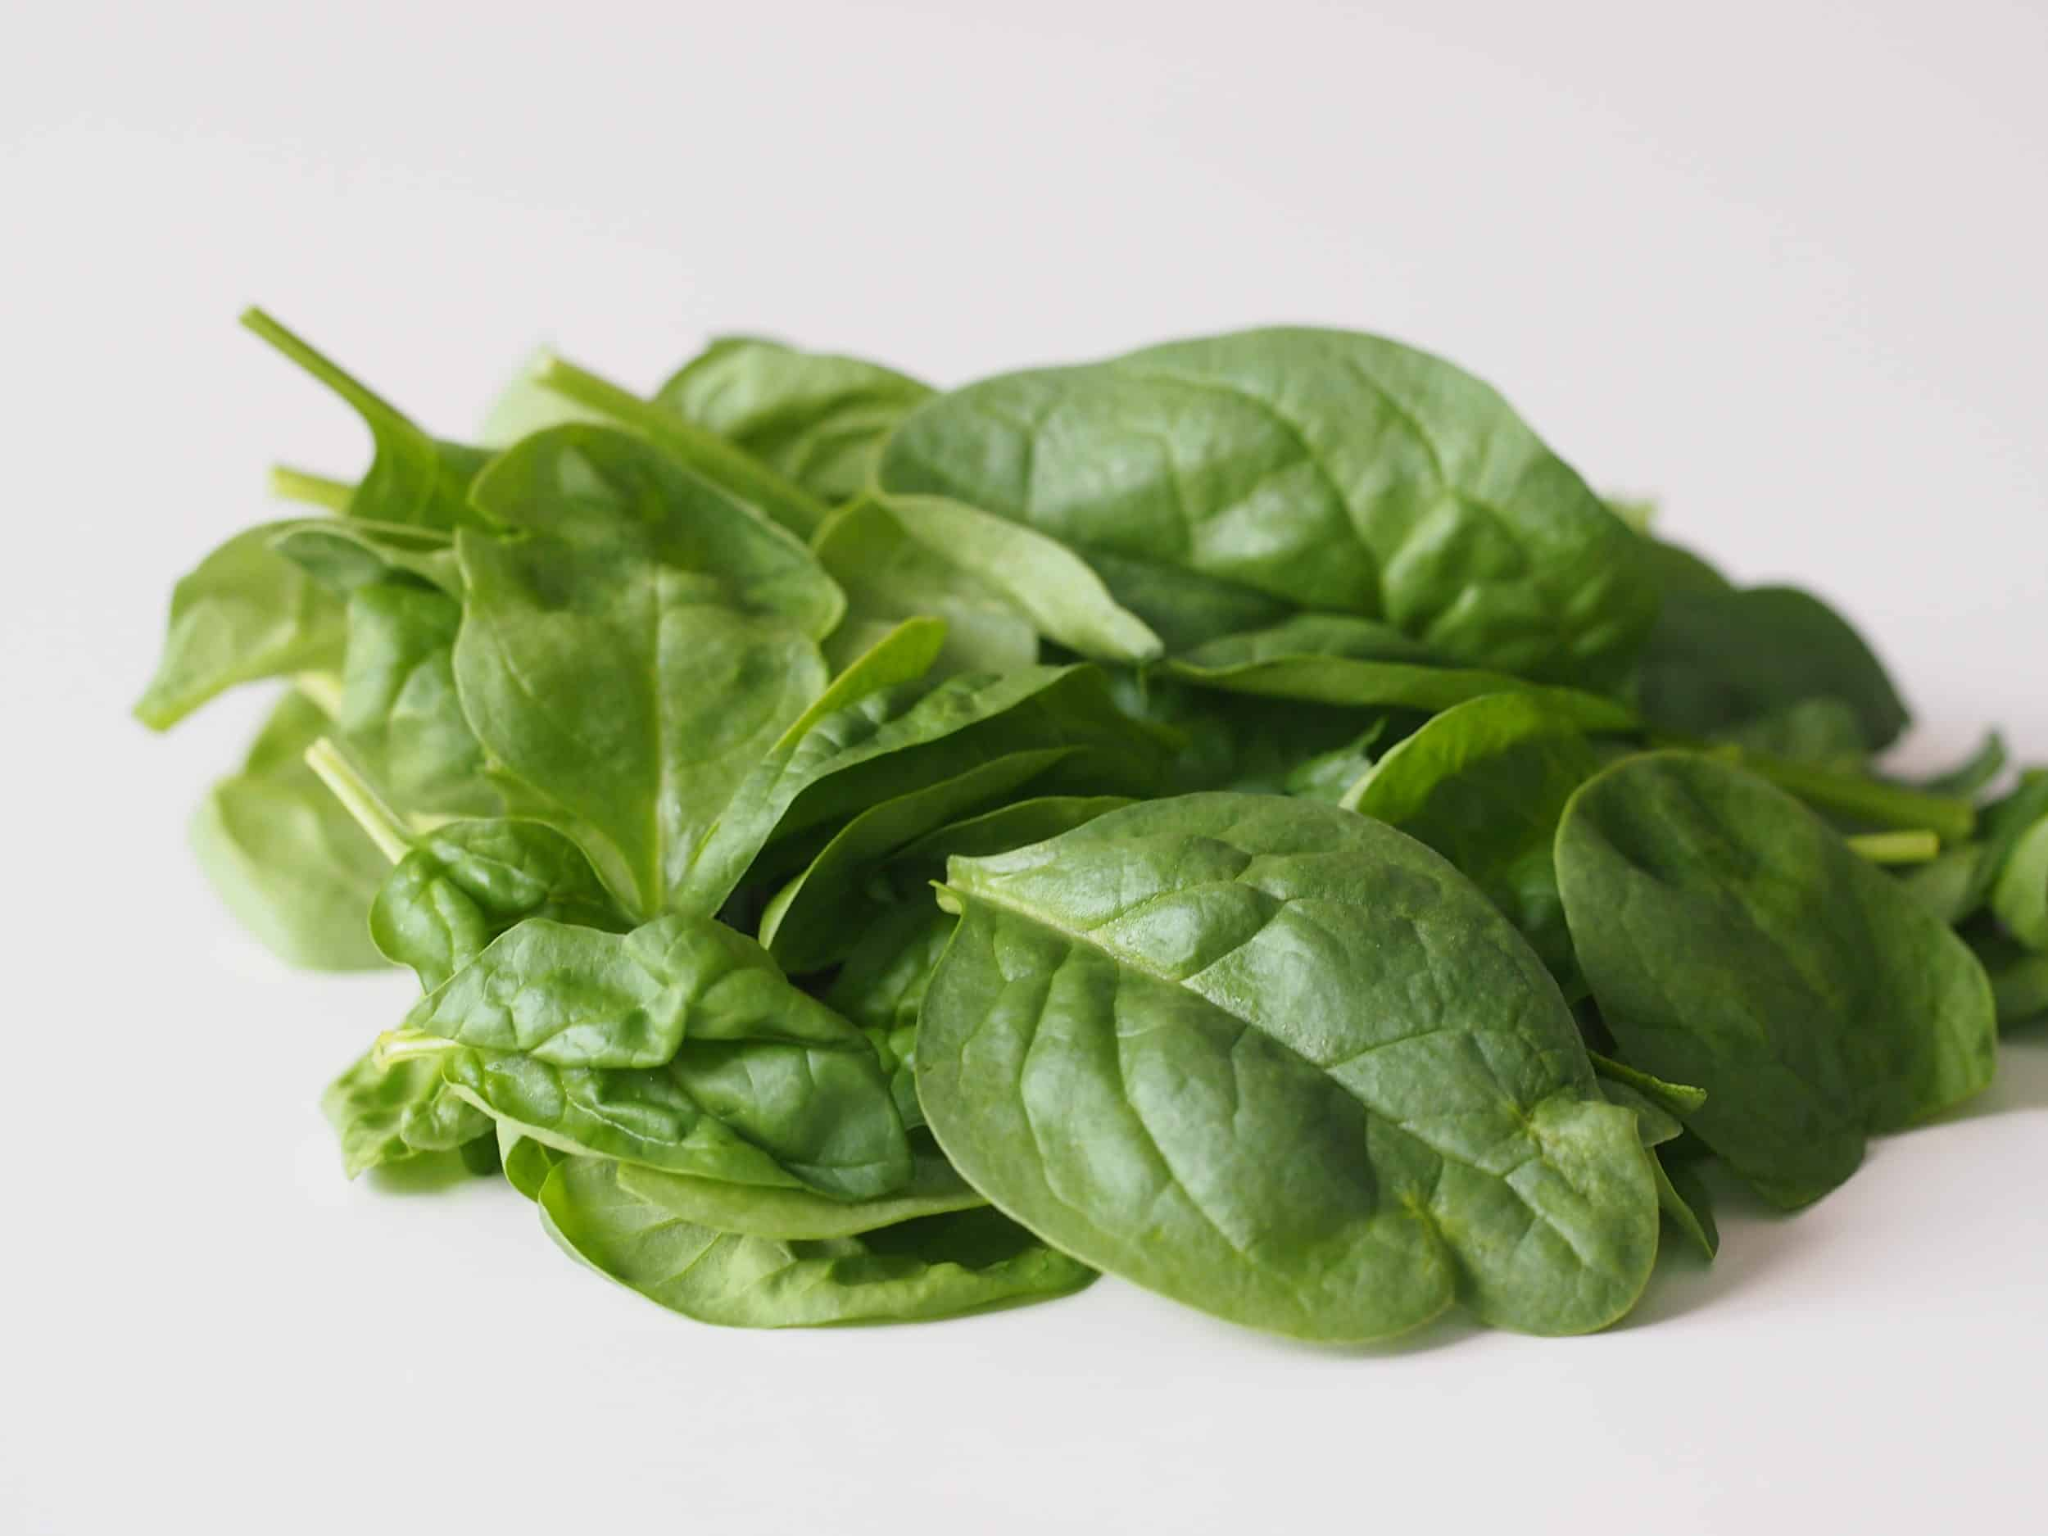 Spinach Helps Stool Pass | Baby Food That Help  with Constipation | Baby Journey